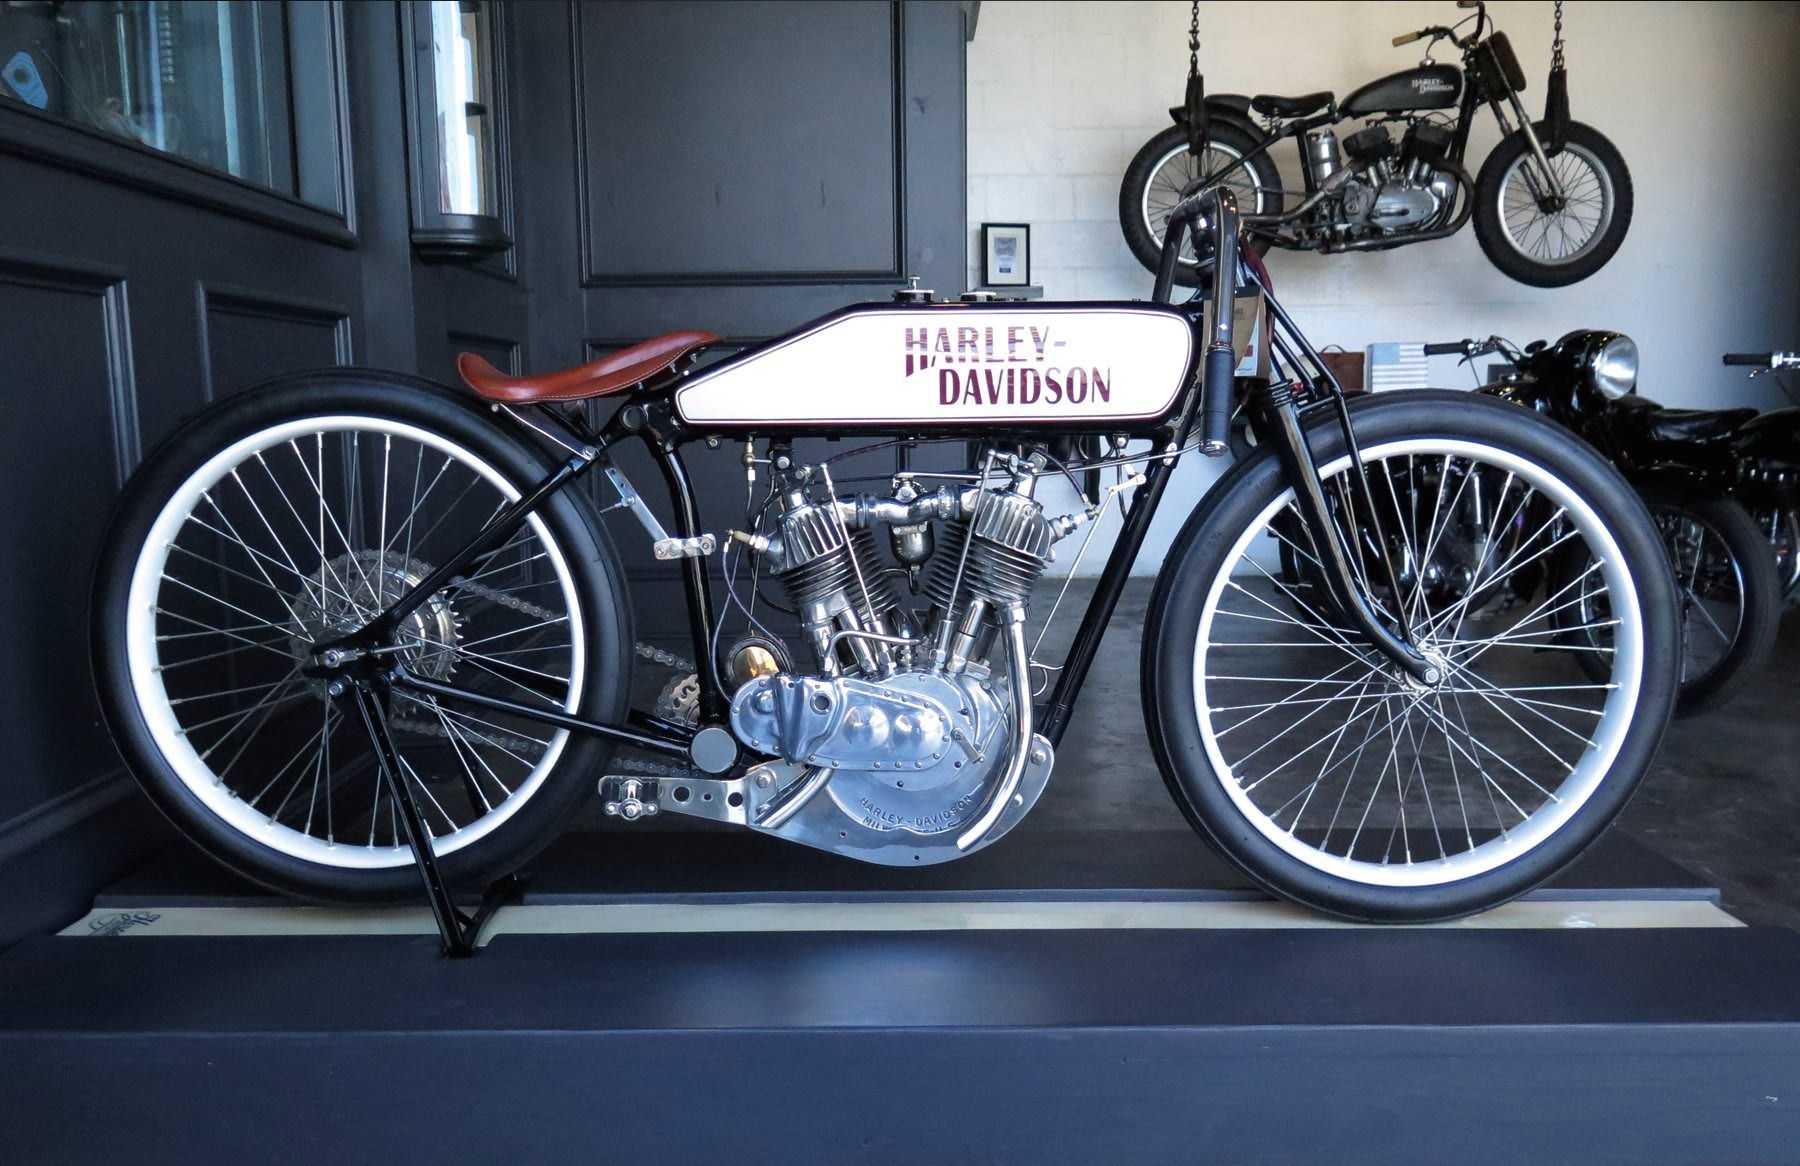 We came across a number of interesting early #Harley